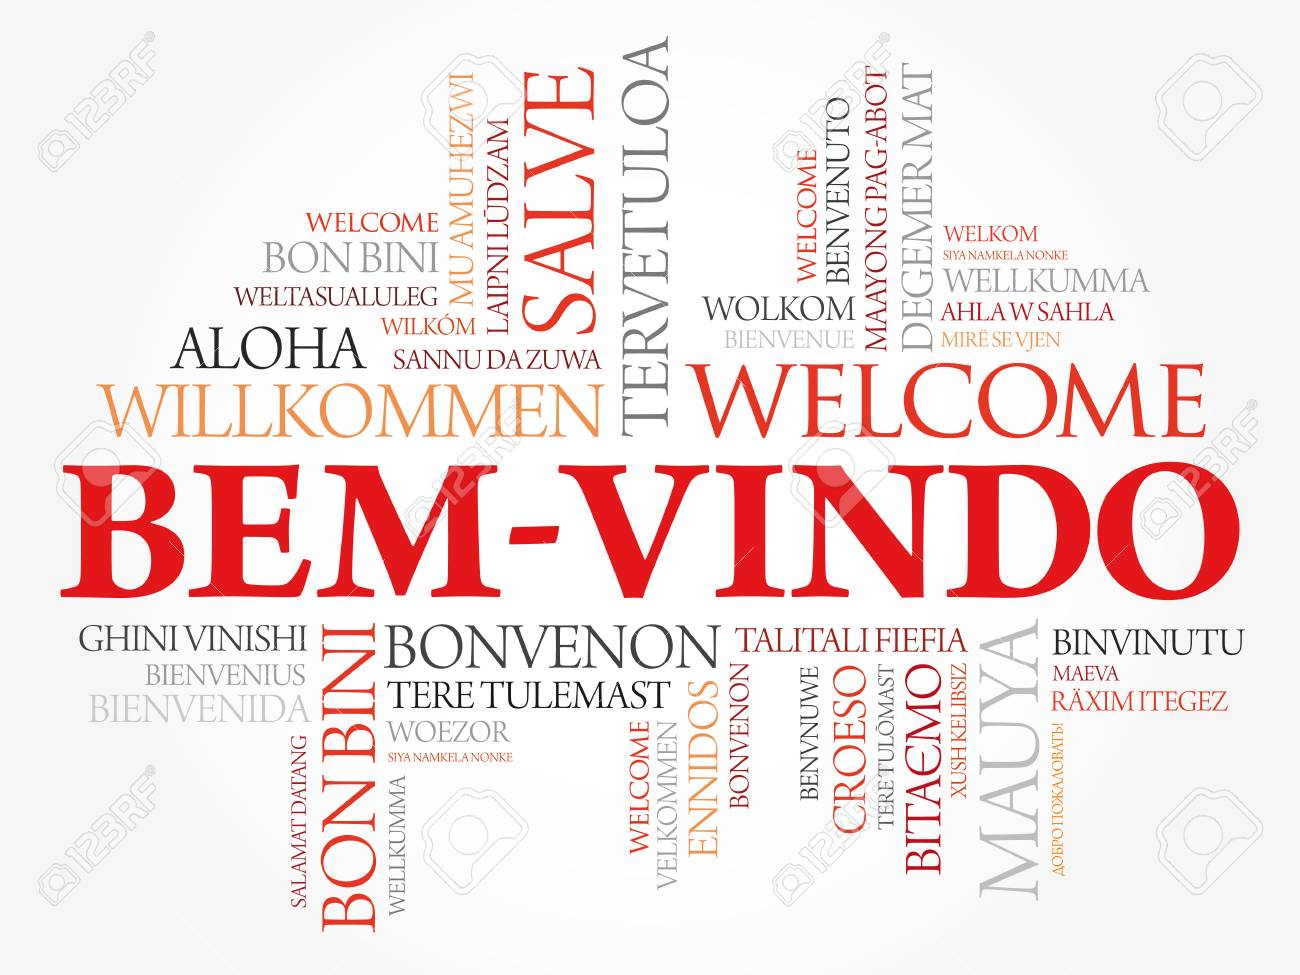 Bem Vindo Welcome In Portuguese Word Cloud In Different Languages Royalty Free Cliparts Vectors And Stock Illustration Image 114031887